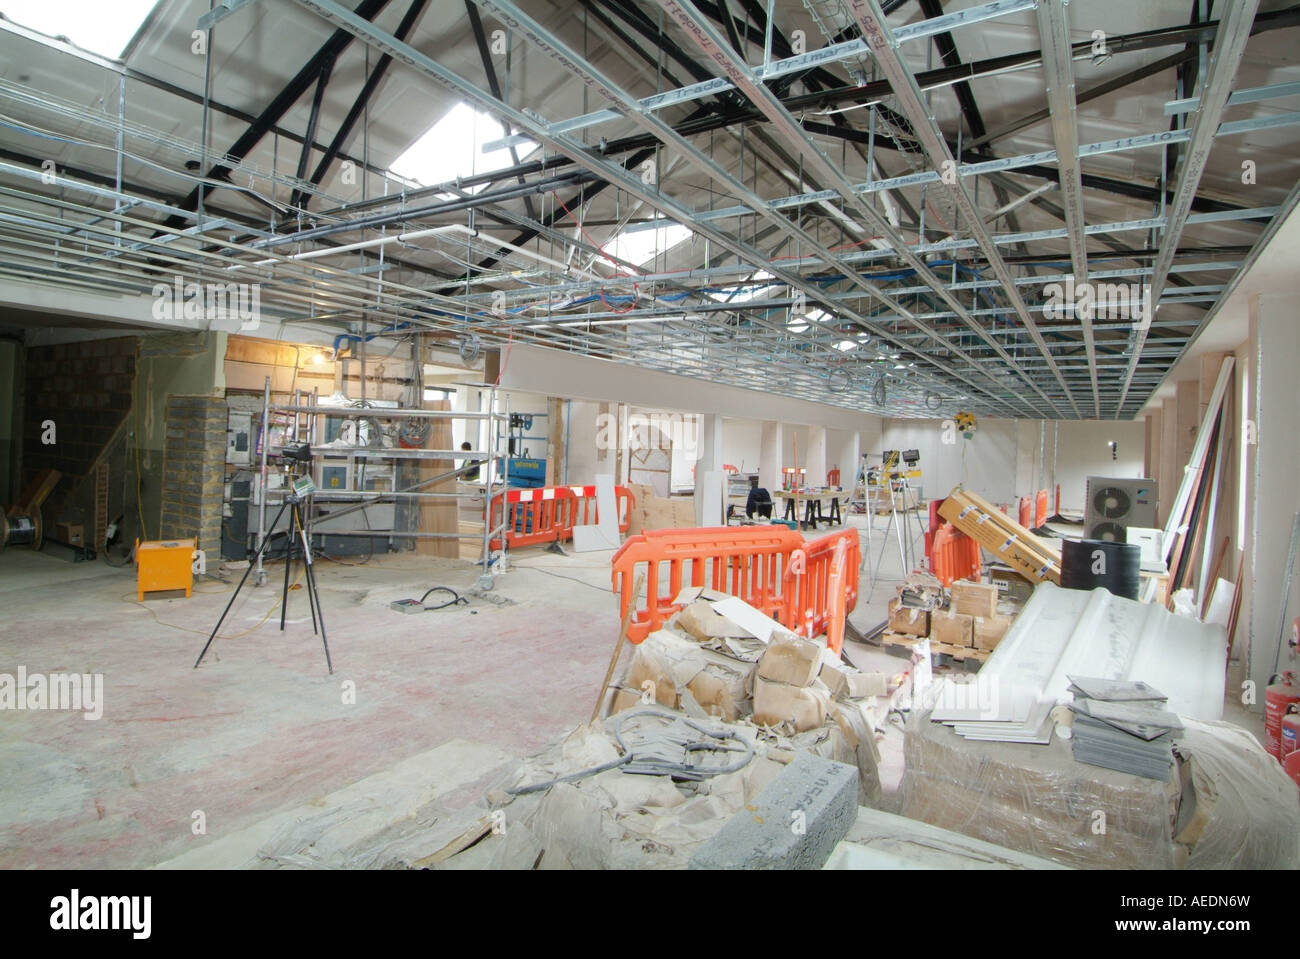 Interior of an industrial site under construction with materials ...